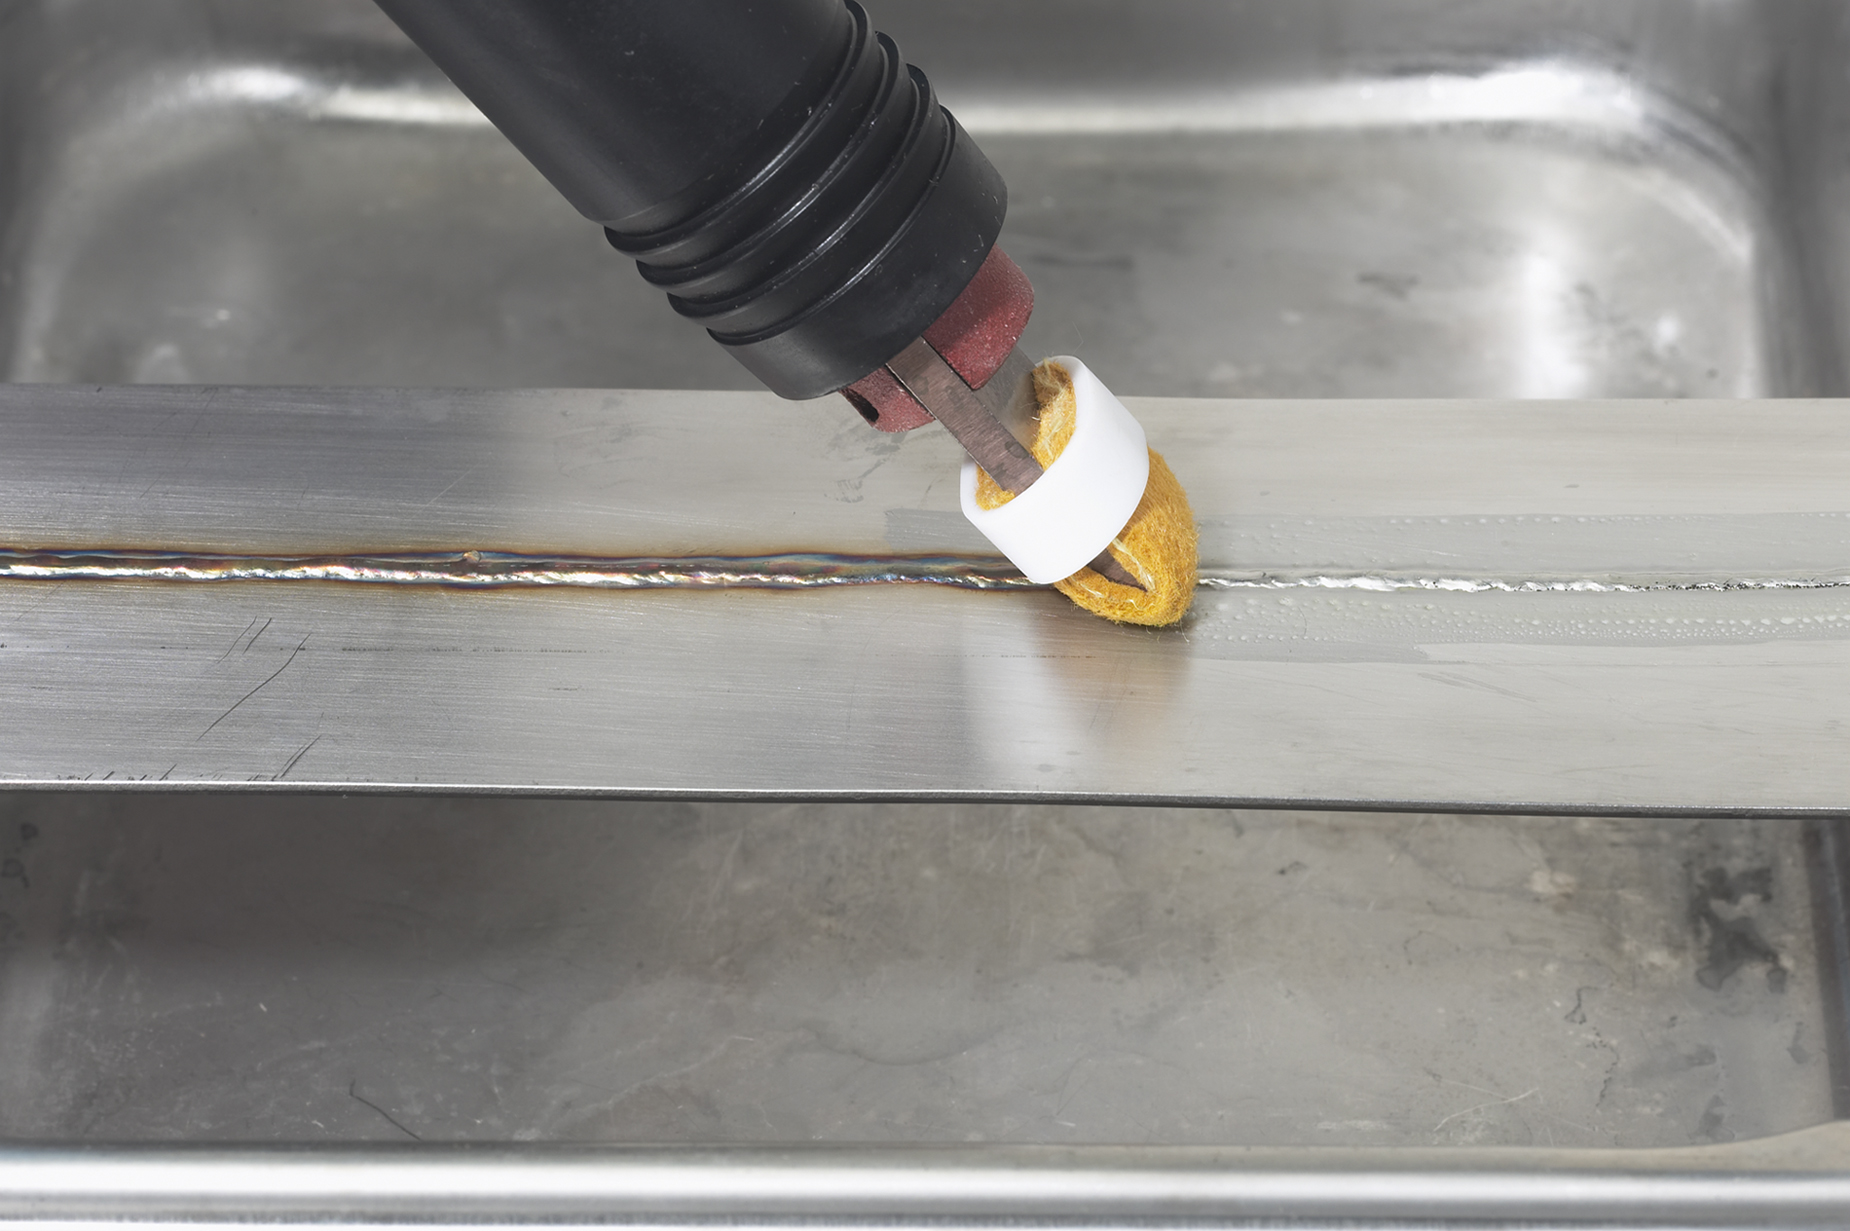 Fastest Weld Cleaning And Passivation System On The Market